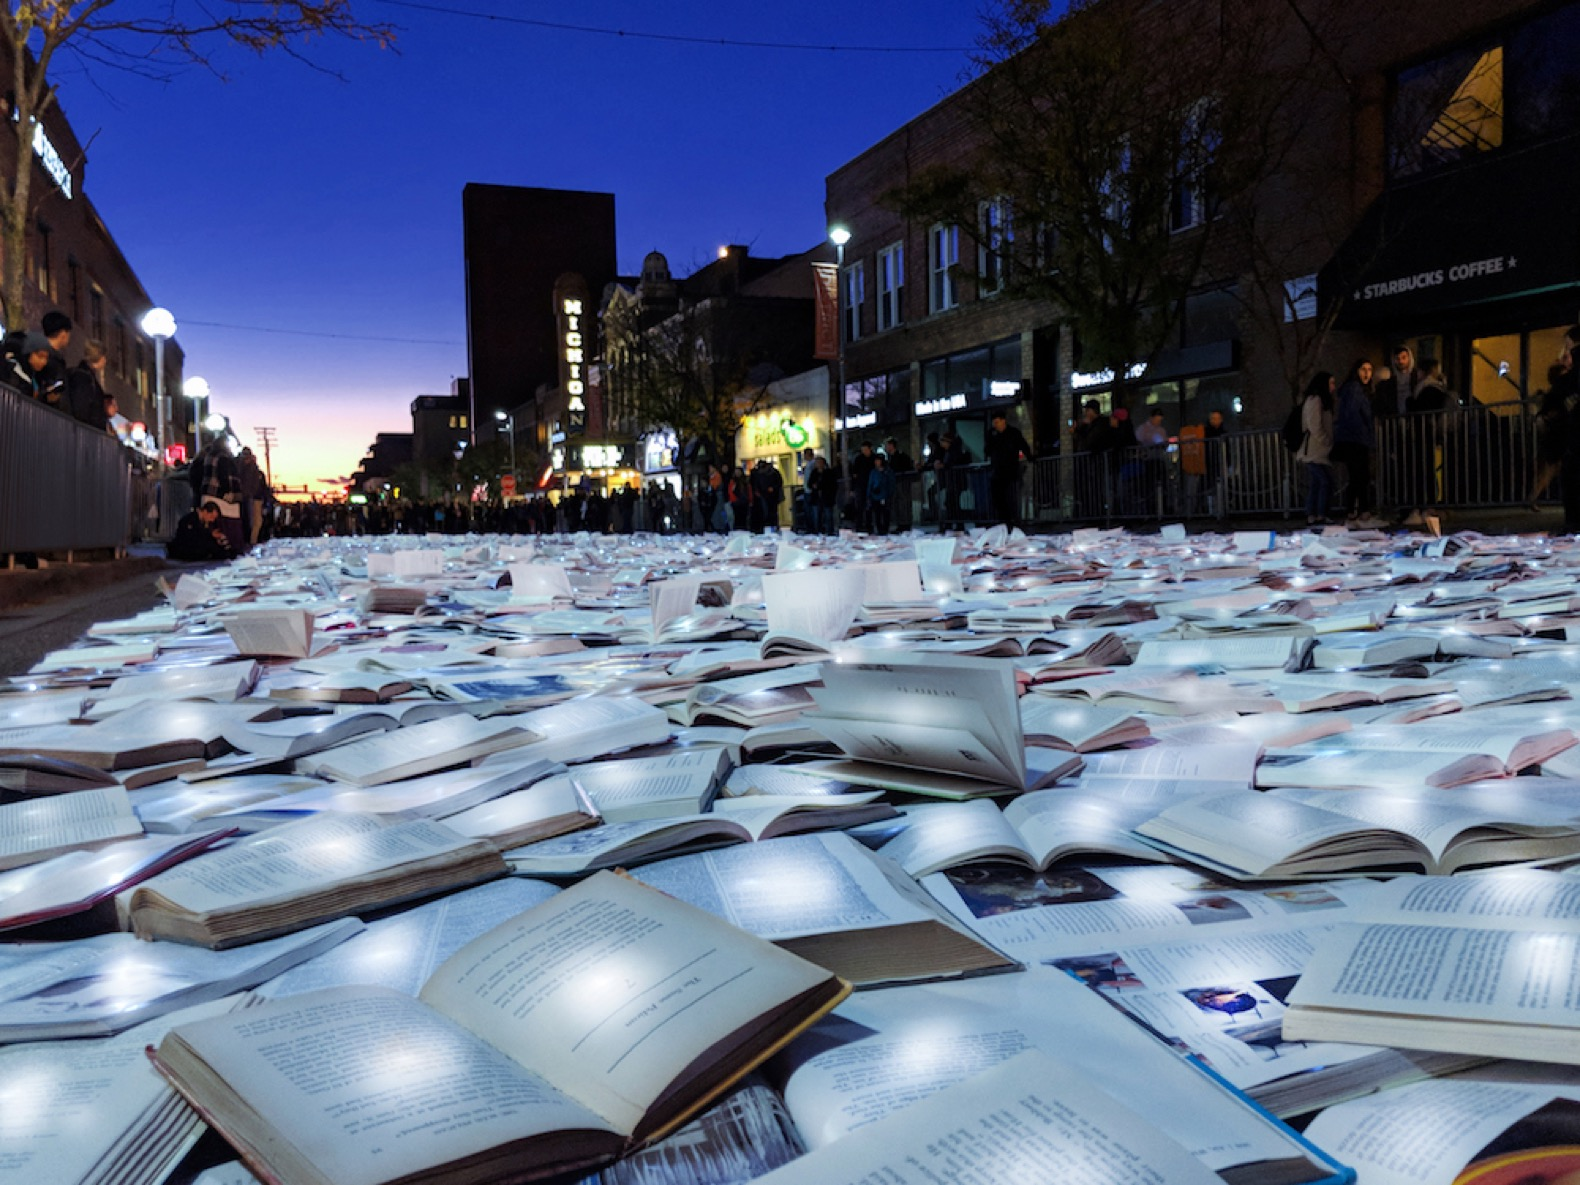 A glowing river of books creates a traffic-free haven in Ann Arbor